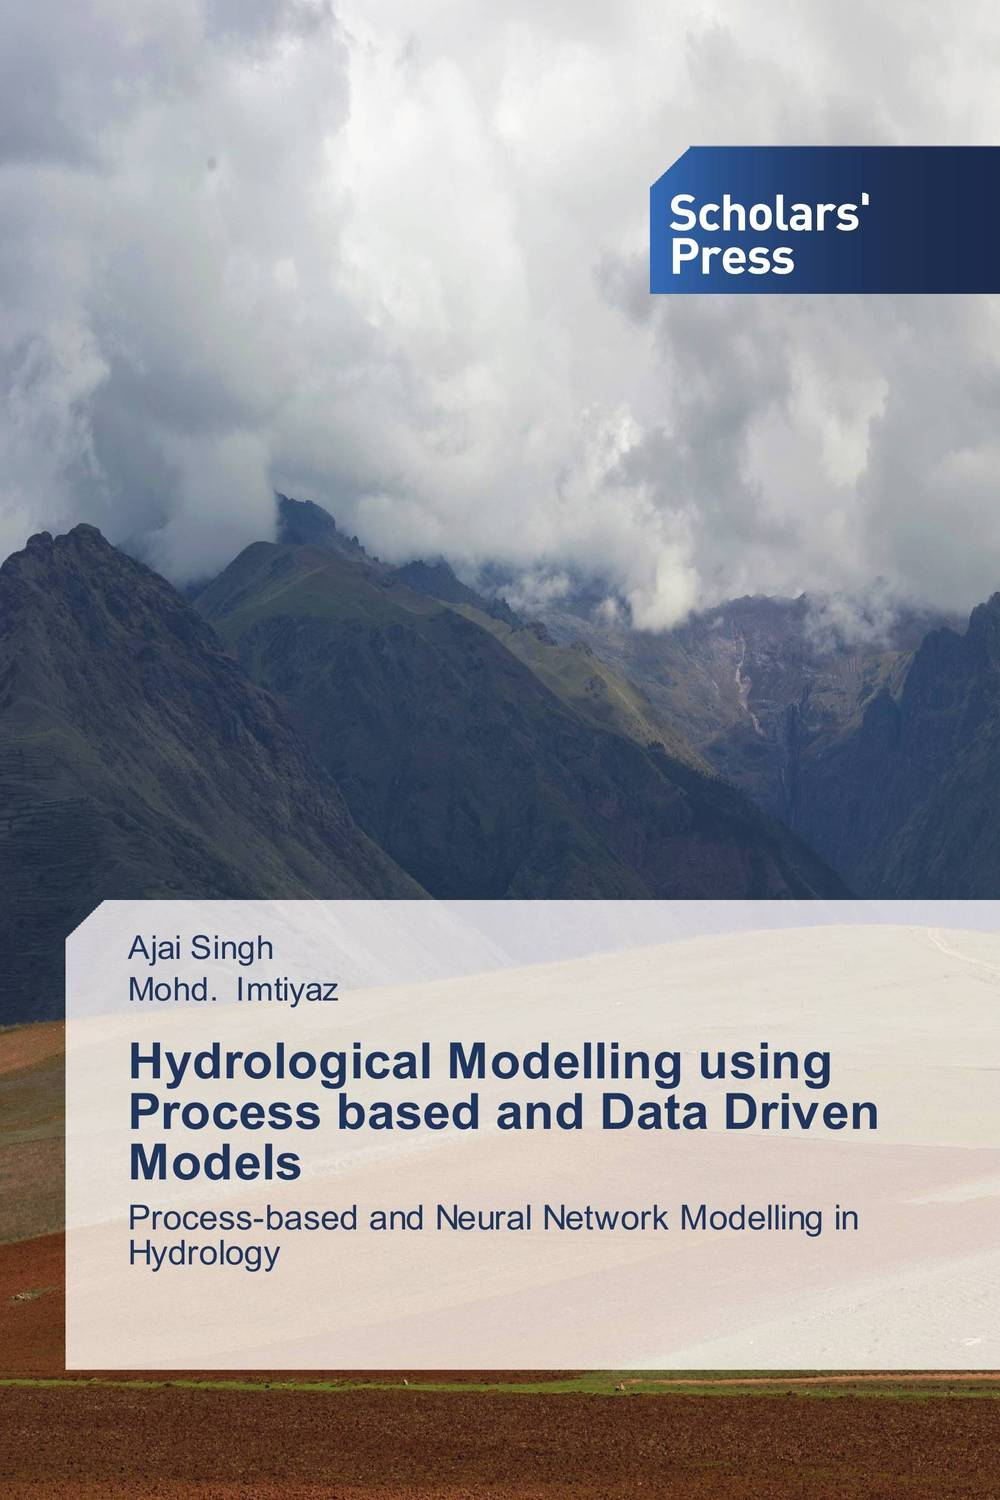 Hydrological Modelling using Process based and Data Driven Models driven to distraction